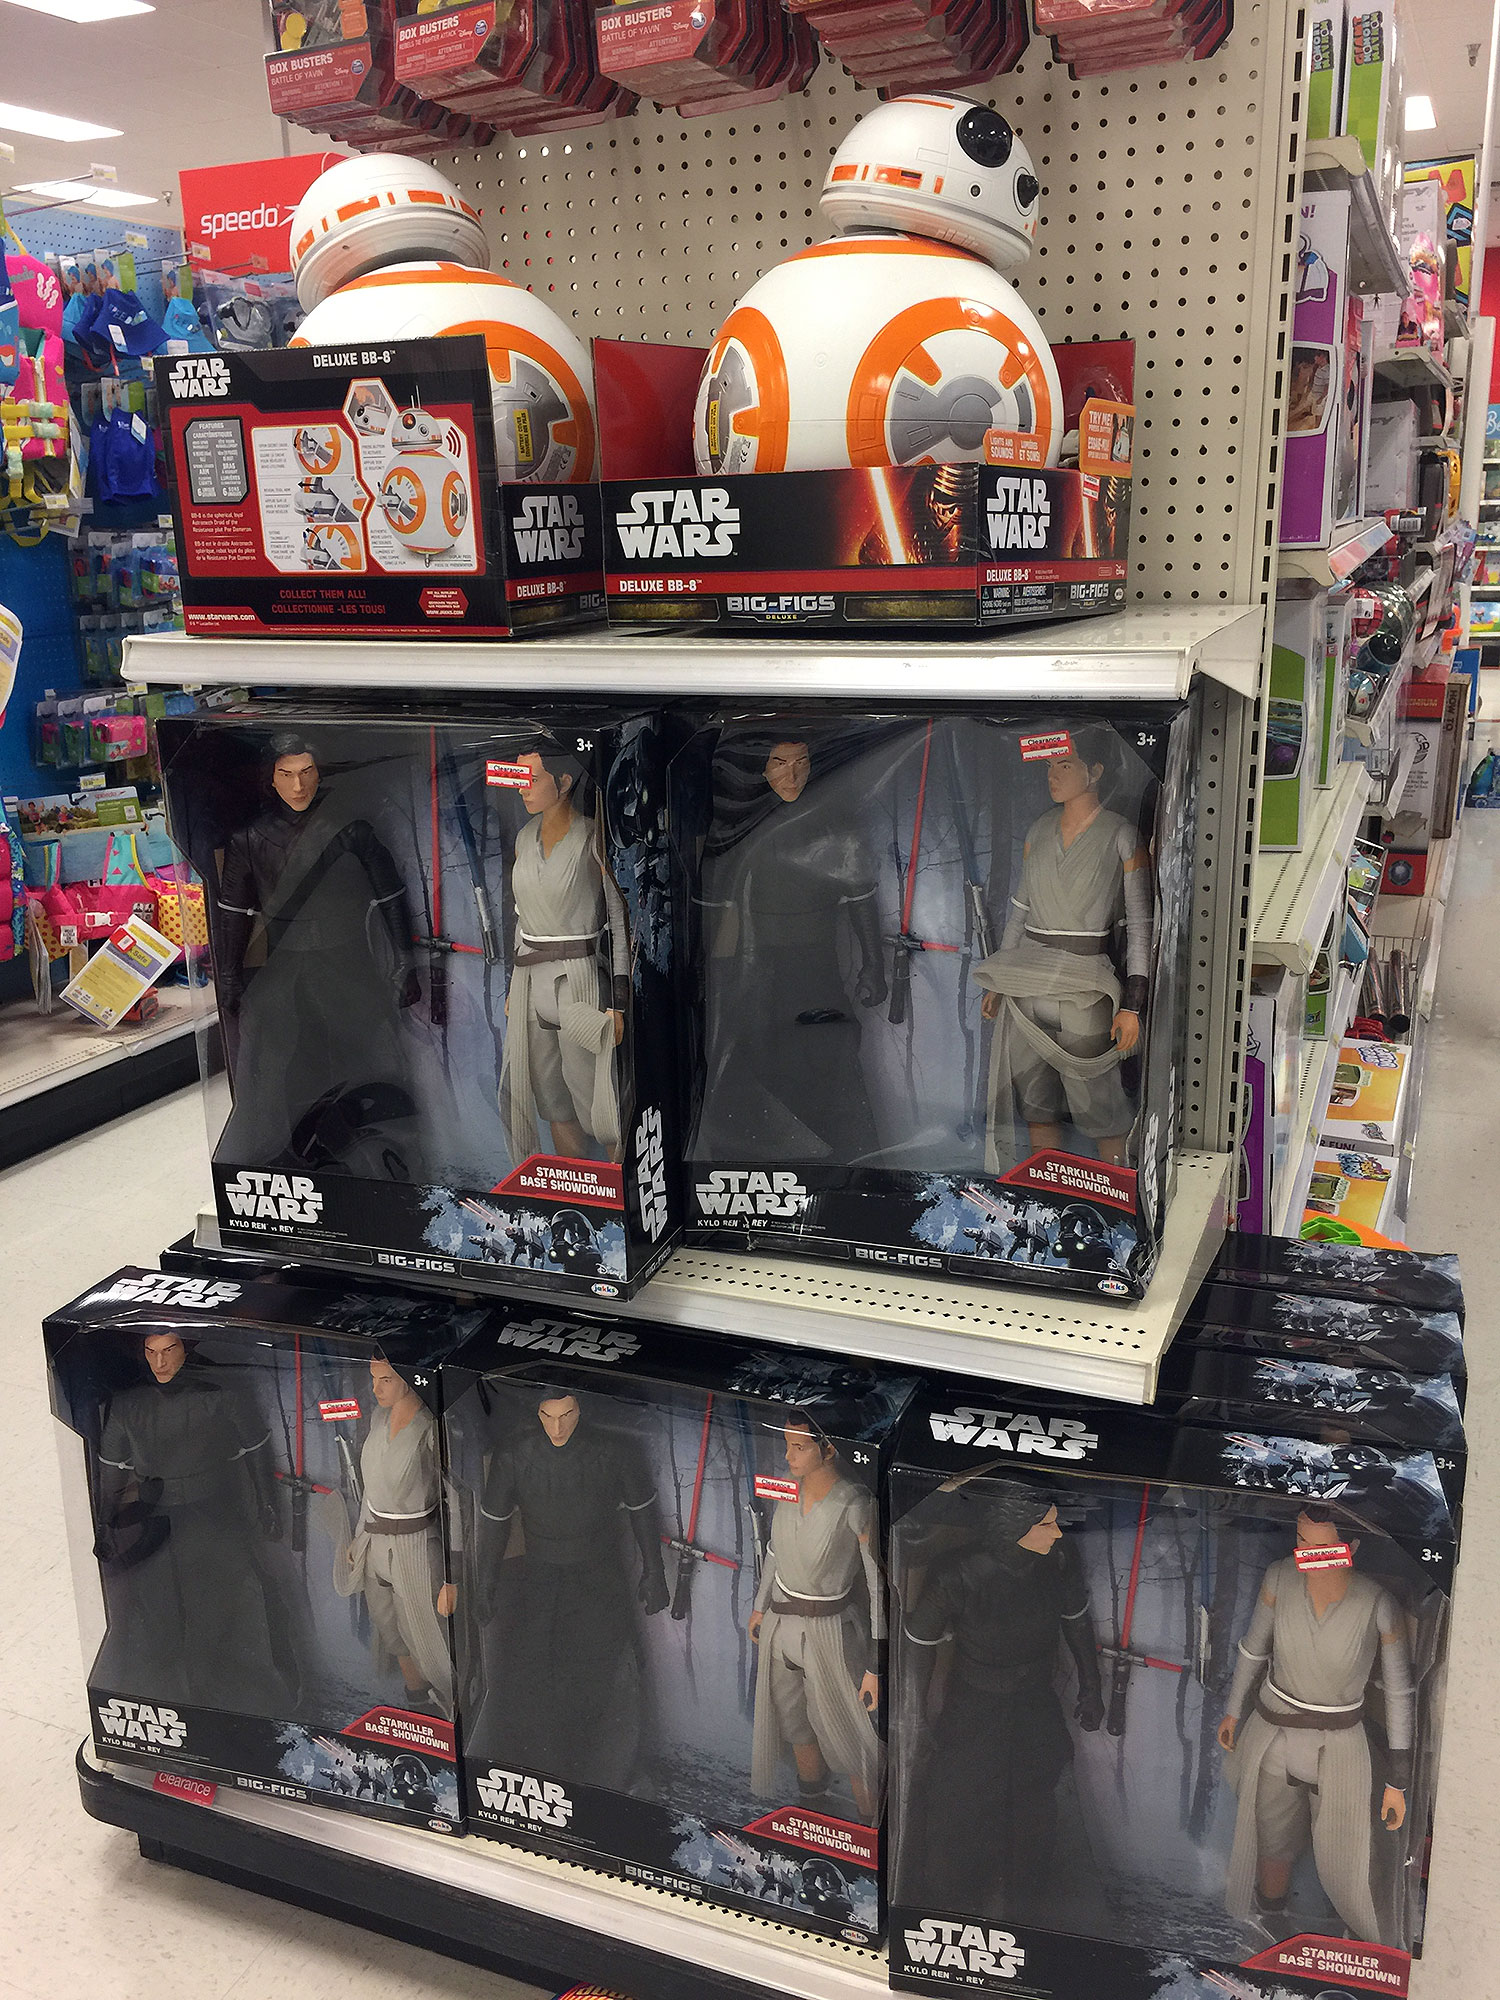 Star Wars at Target